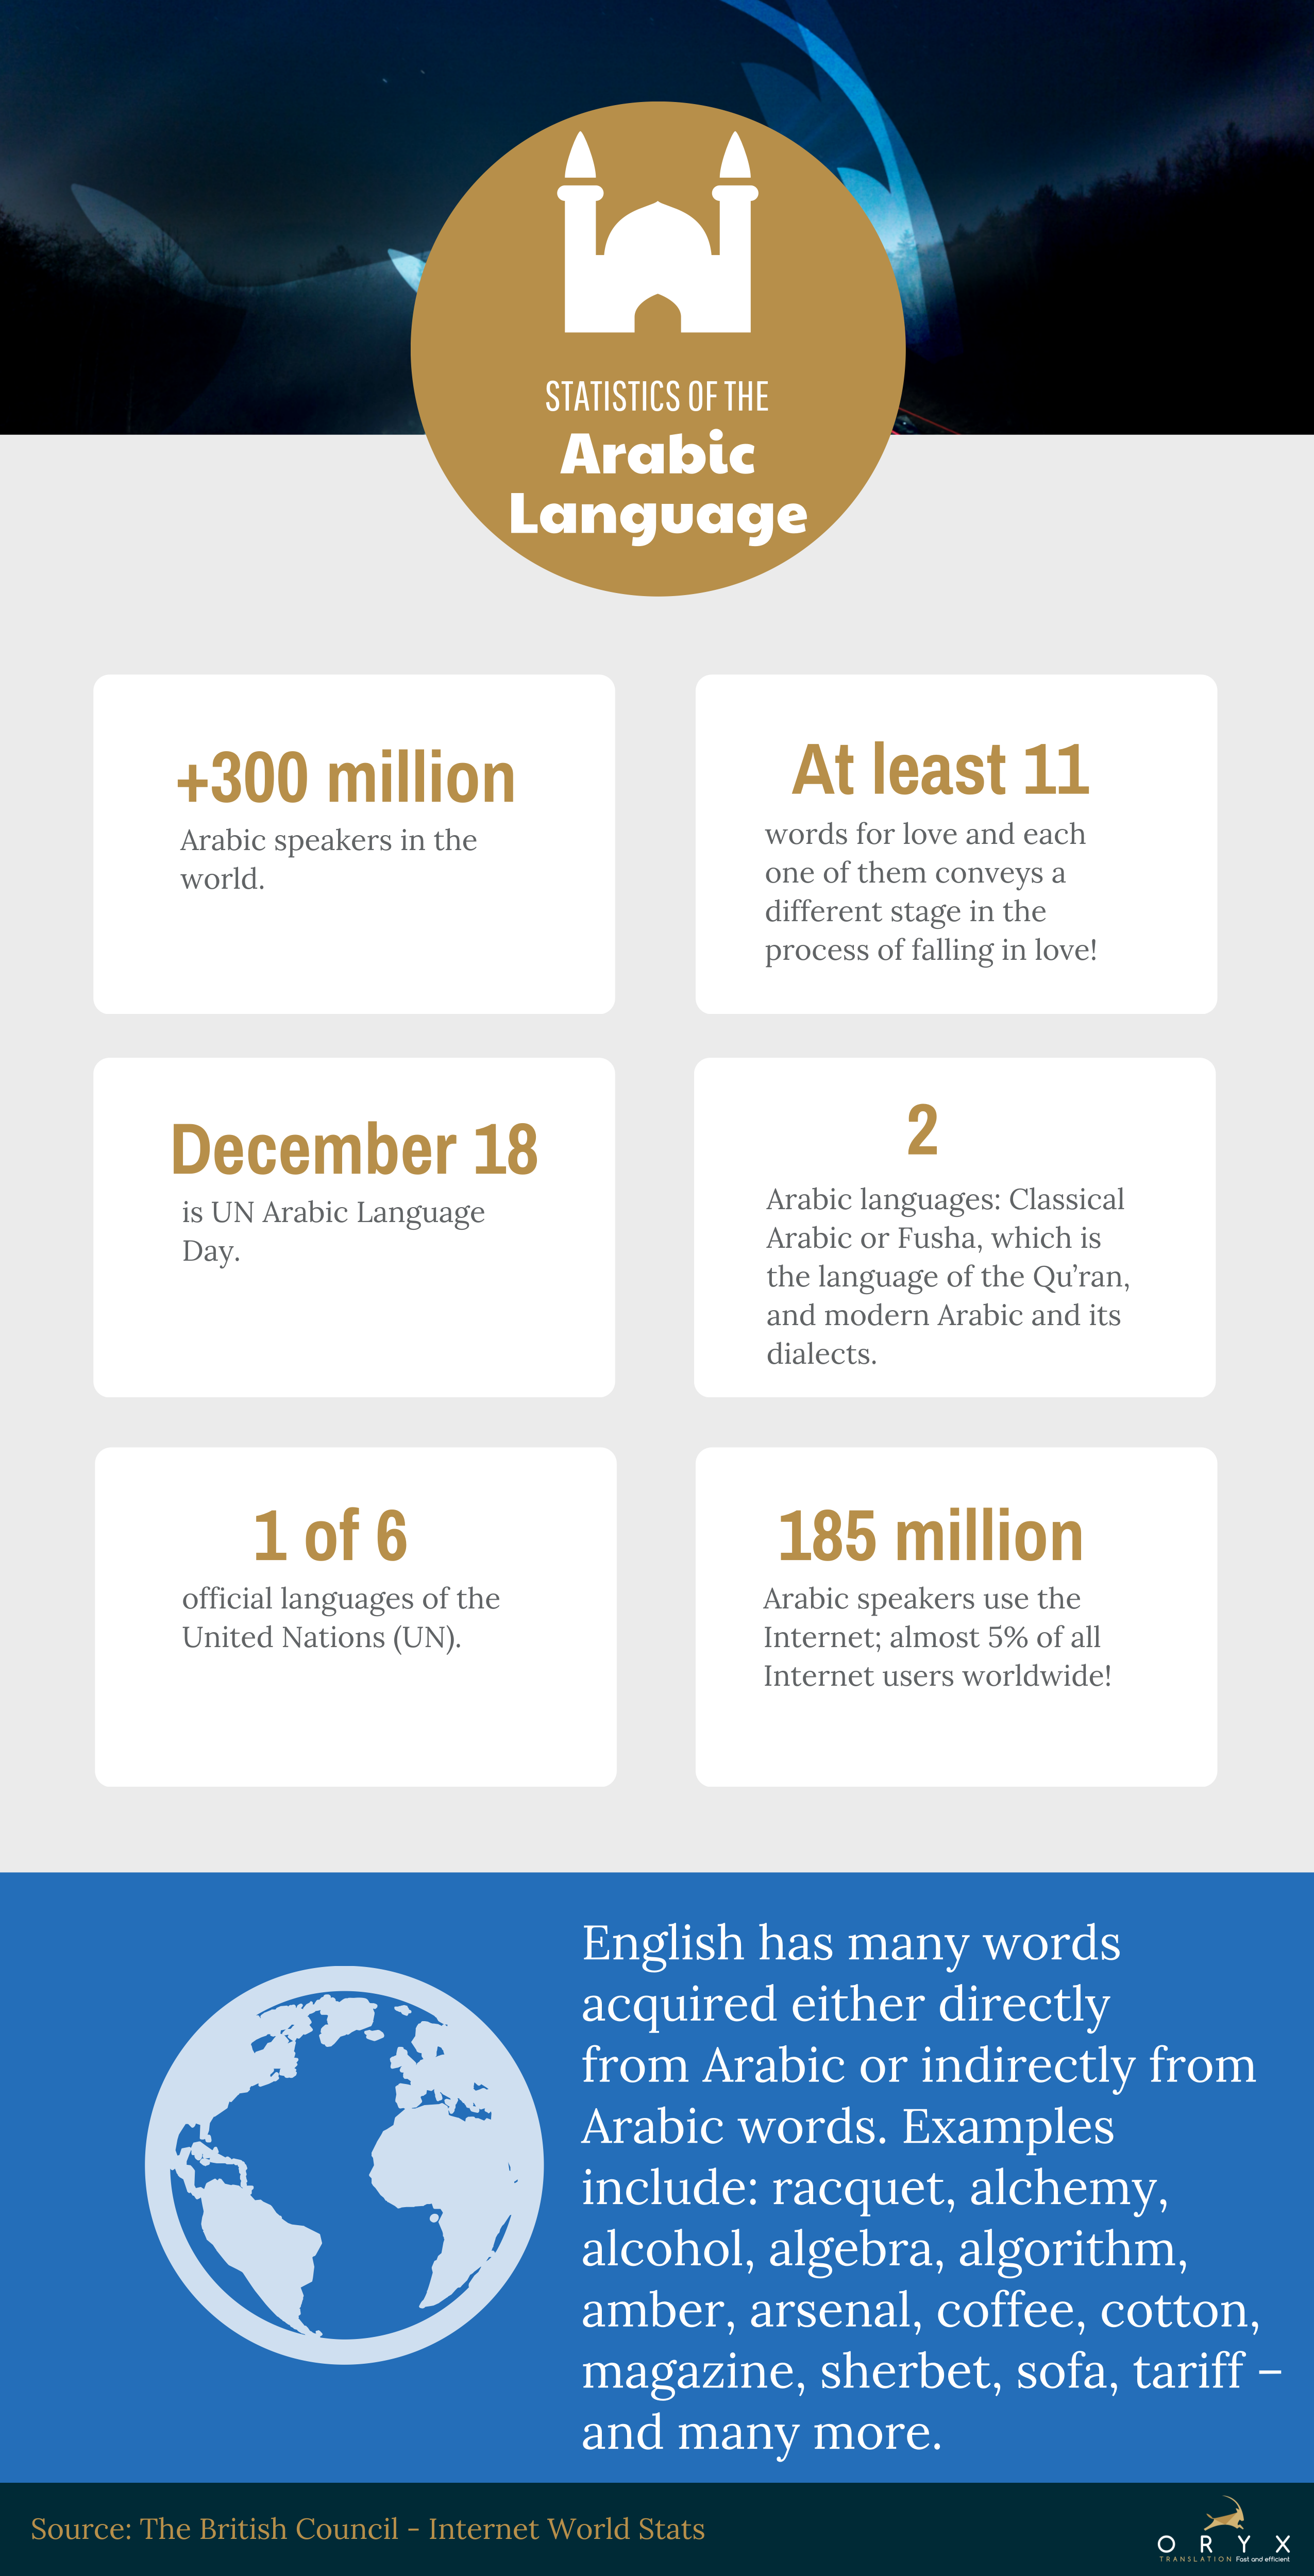 An infographic shows interesting statistics about the Arabic